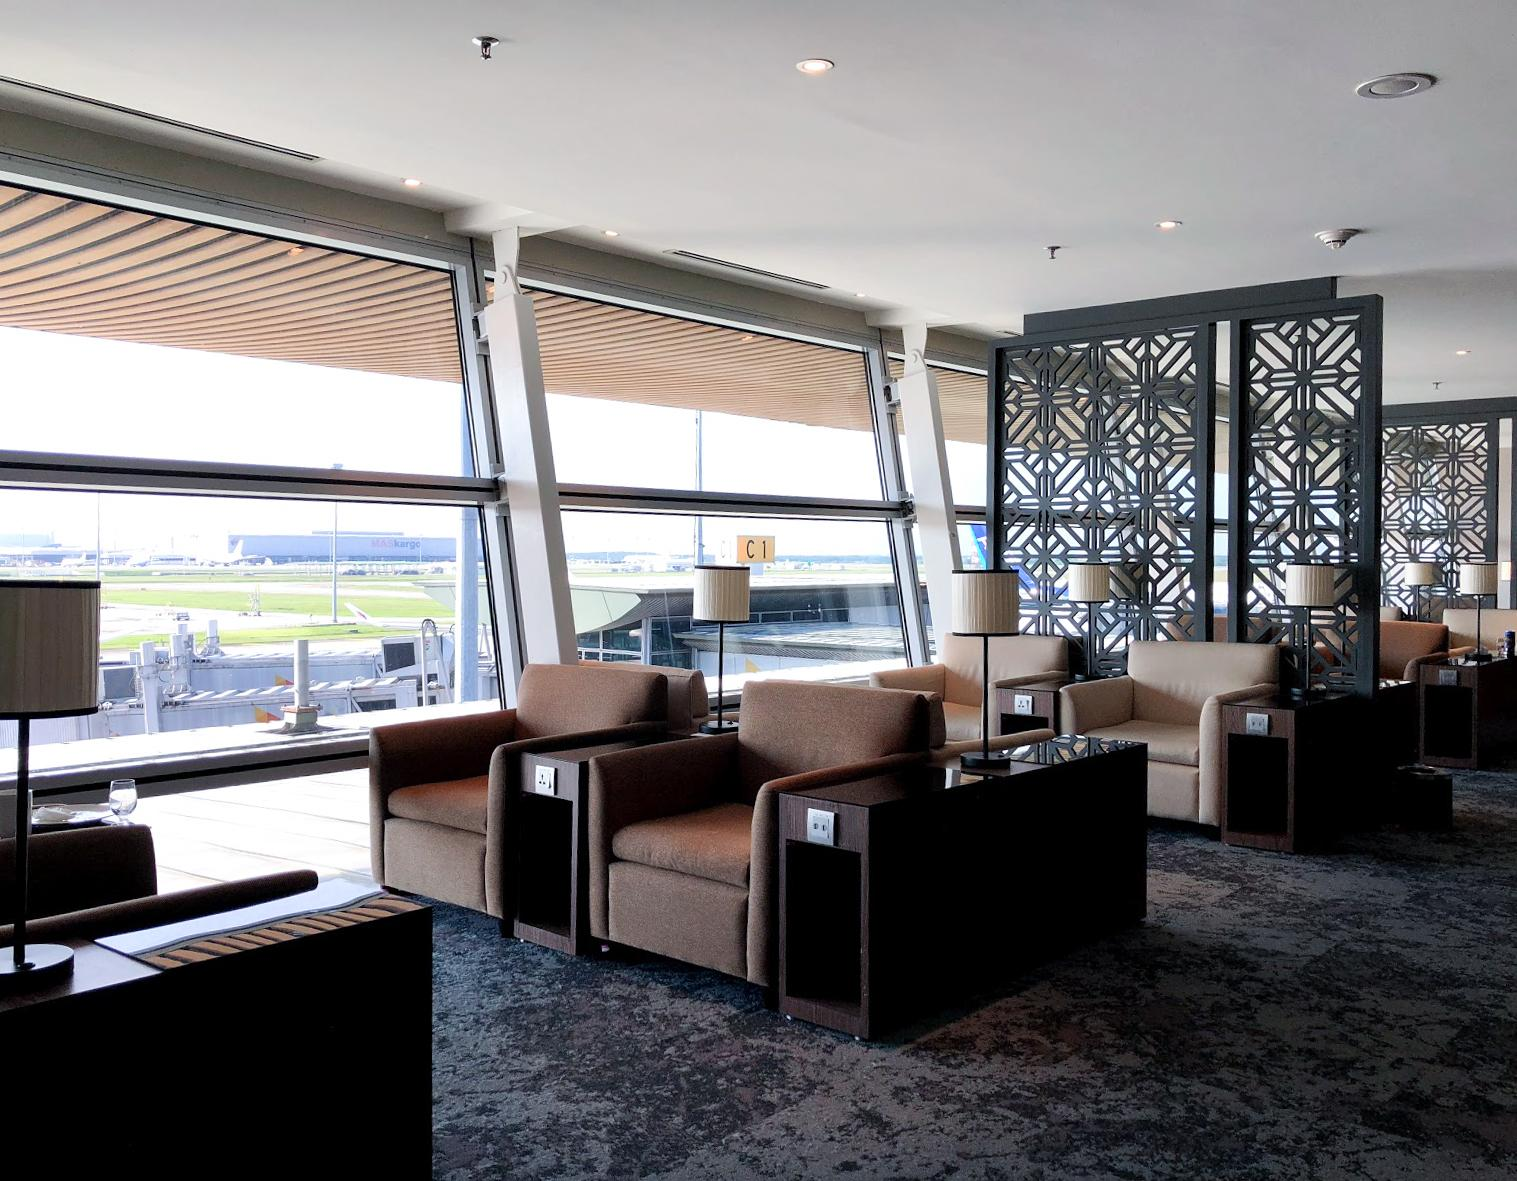 Malaysia Airlines Satellite Golden Lounge Kuala Lumpur seating area with tarmac view